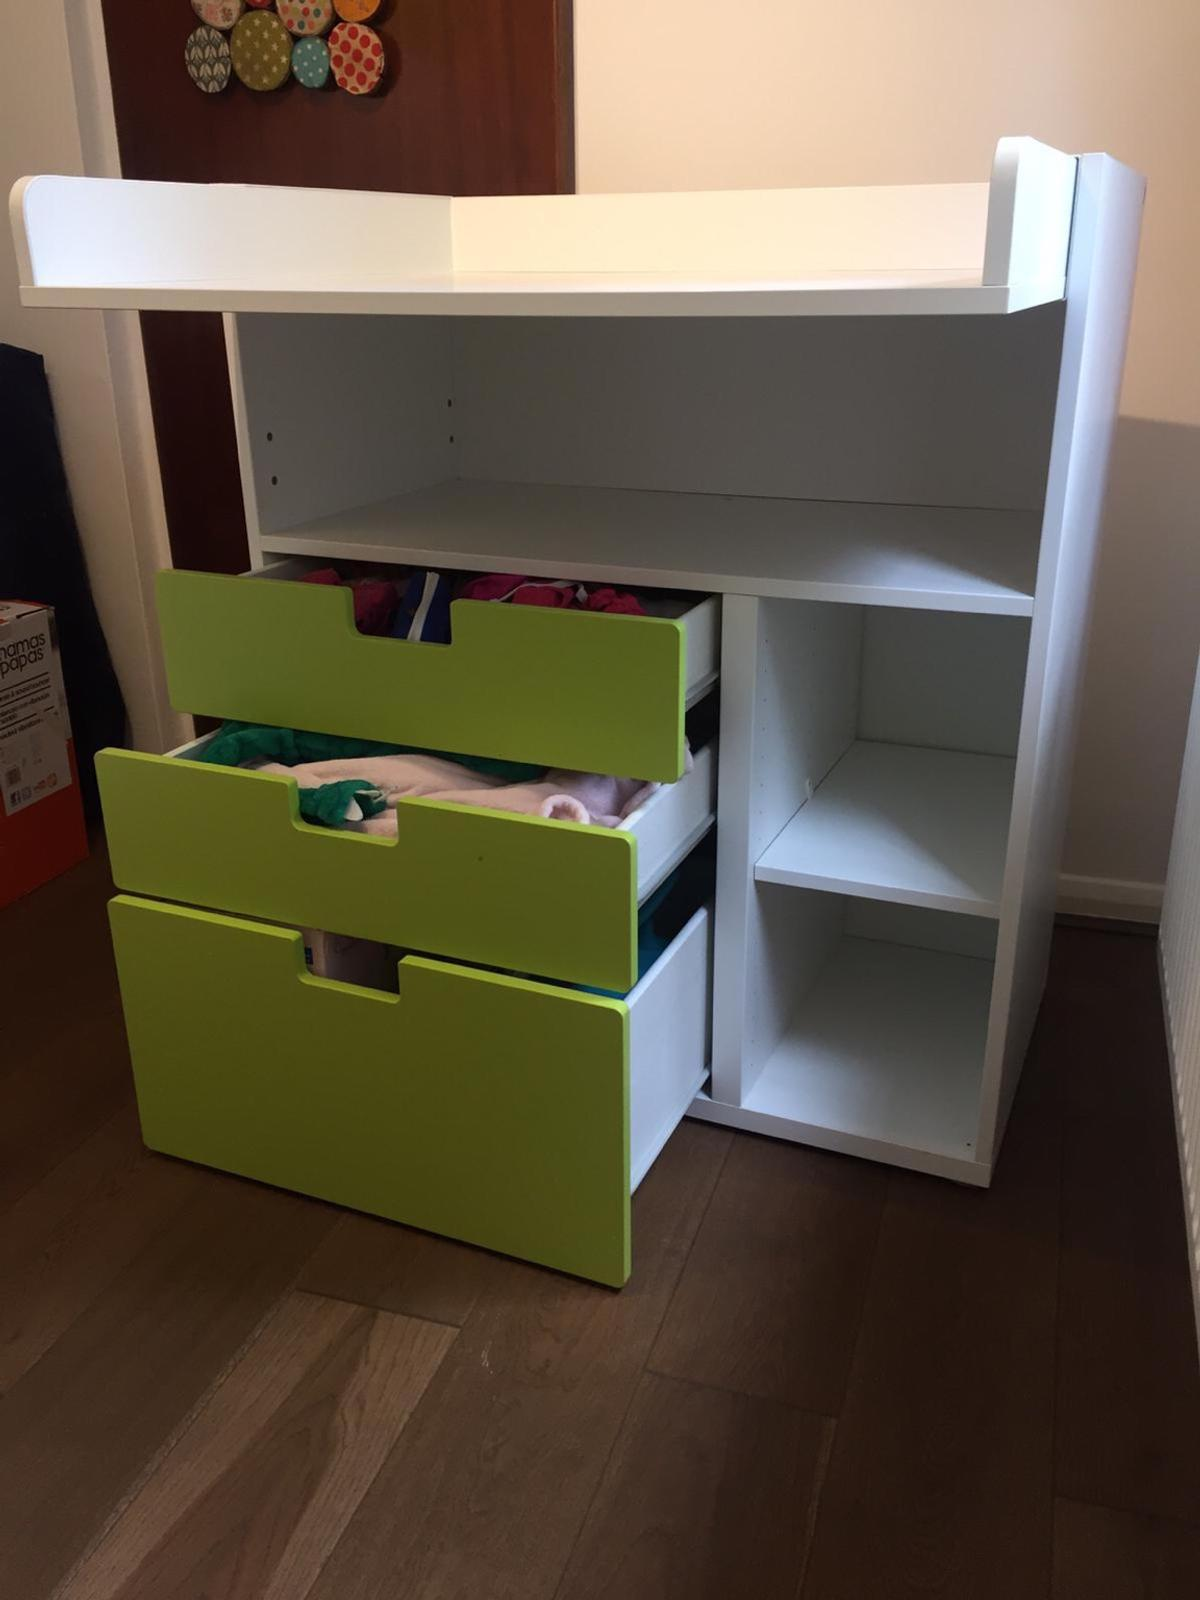 e630ac7fd6b0 Description. Changing table with drawers. Ikea - FRITIDS/STUVA White/green